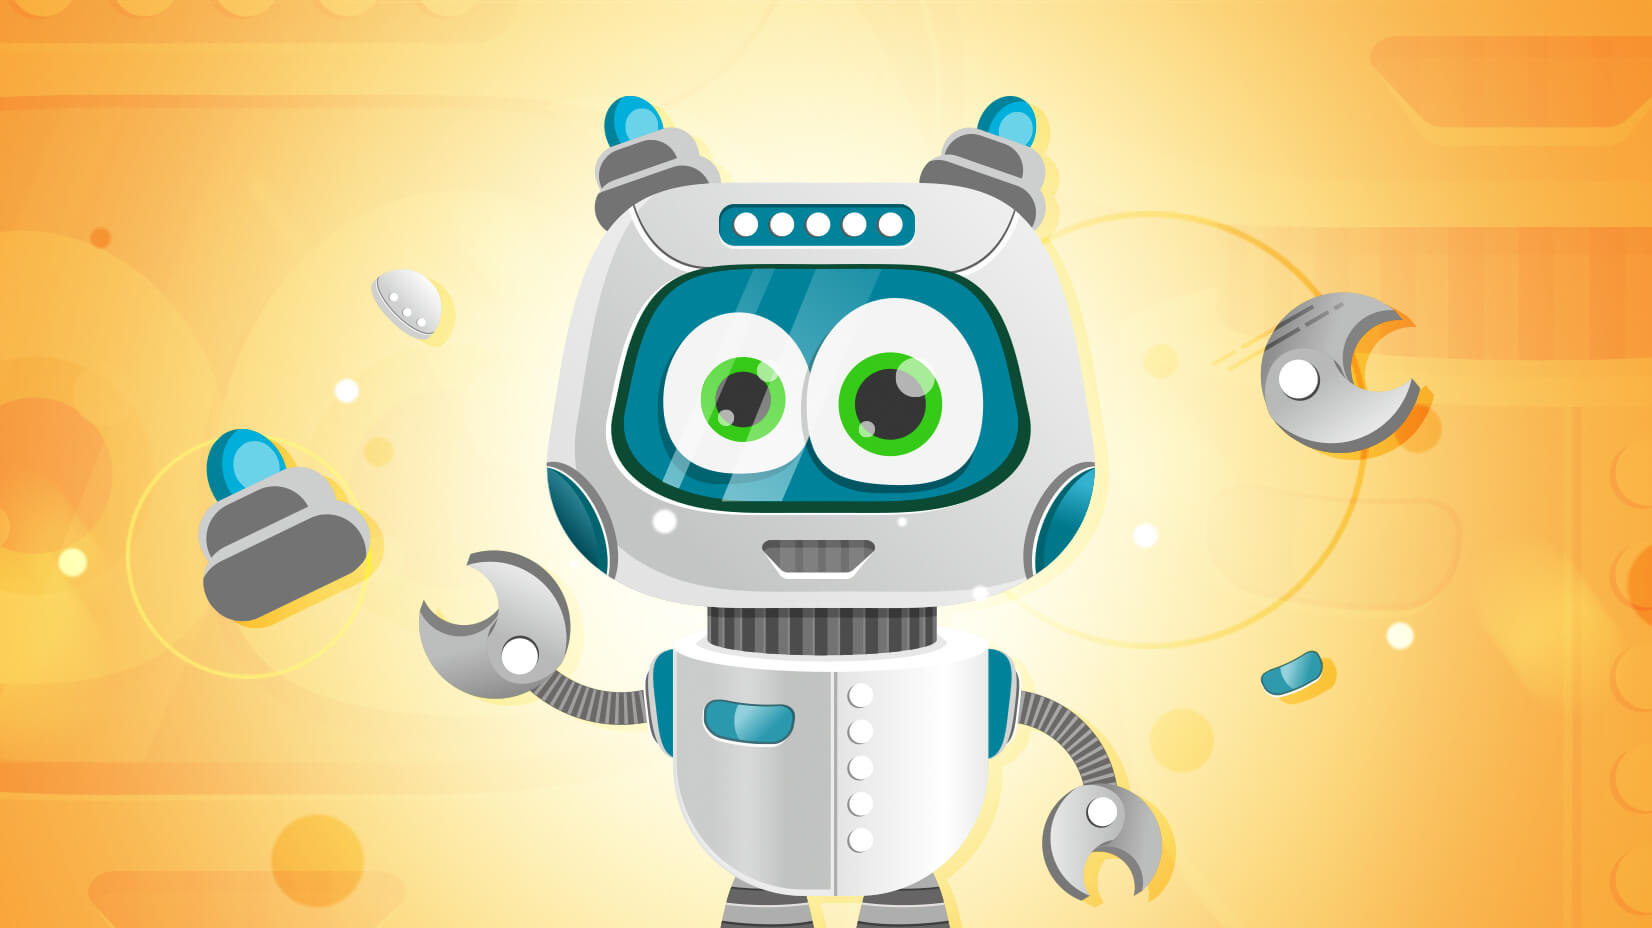 Simple Character Design Illustrator : Simple vector robot character in illustrator tutorial freebie